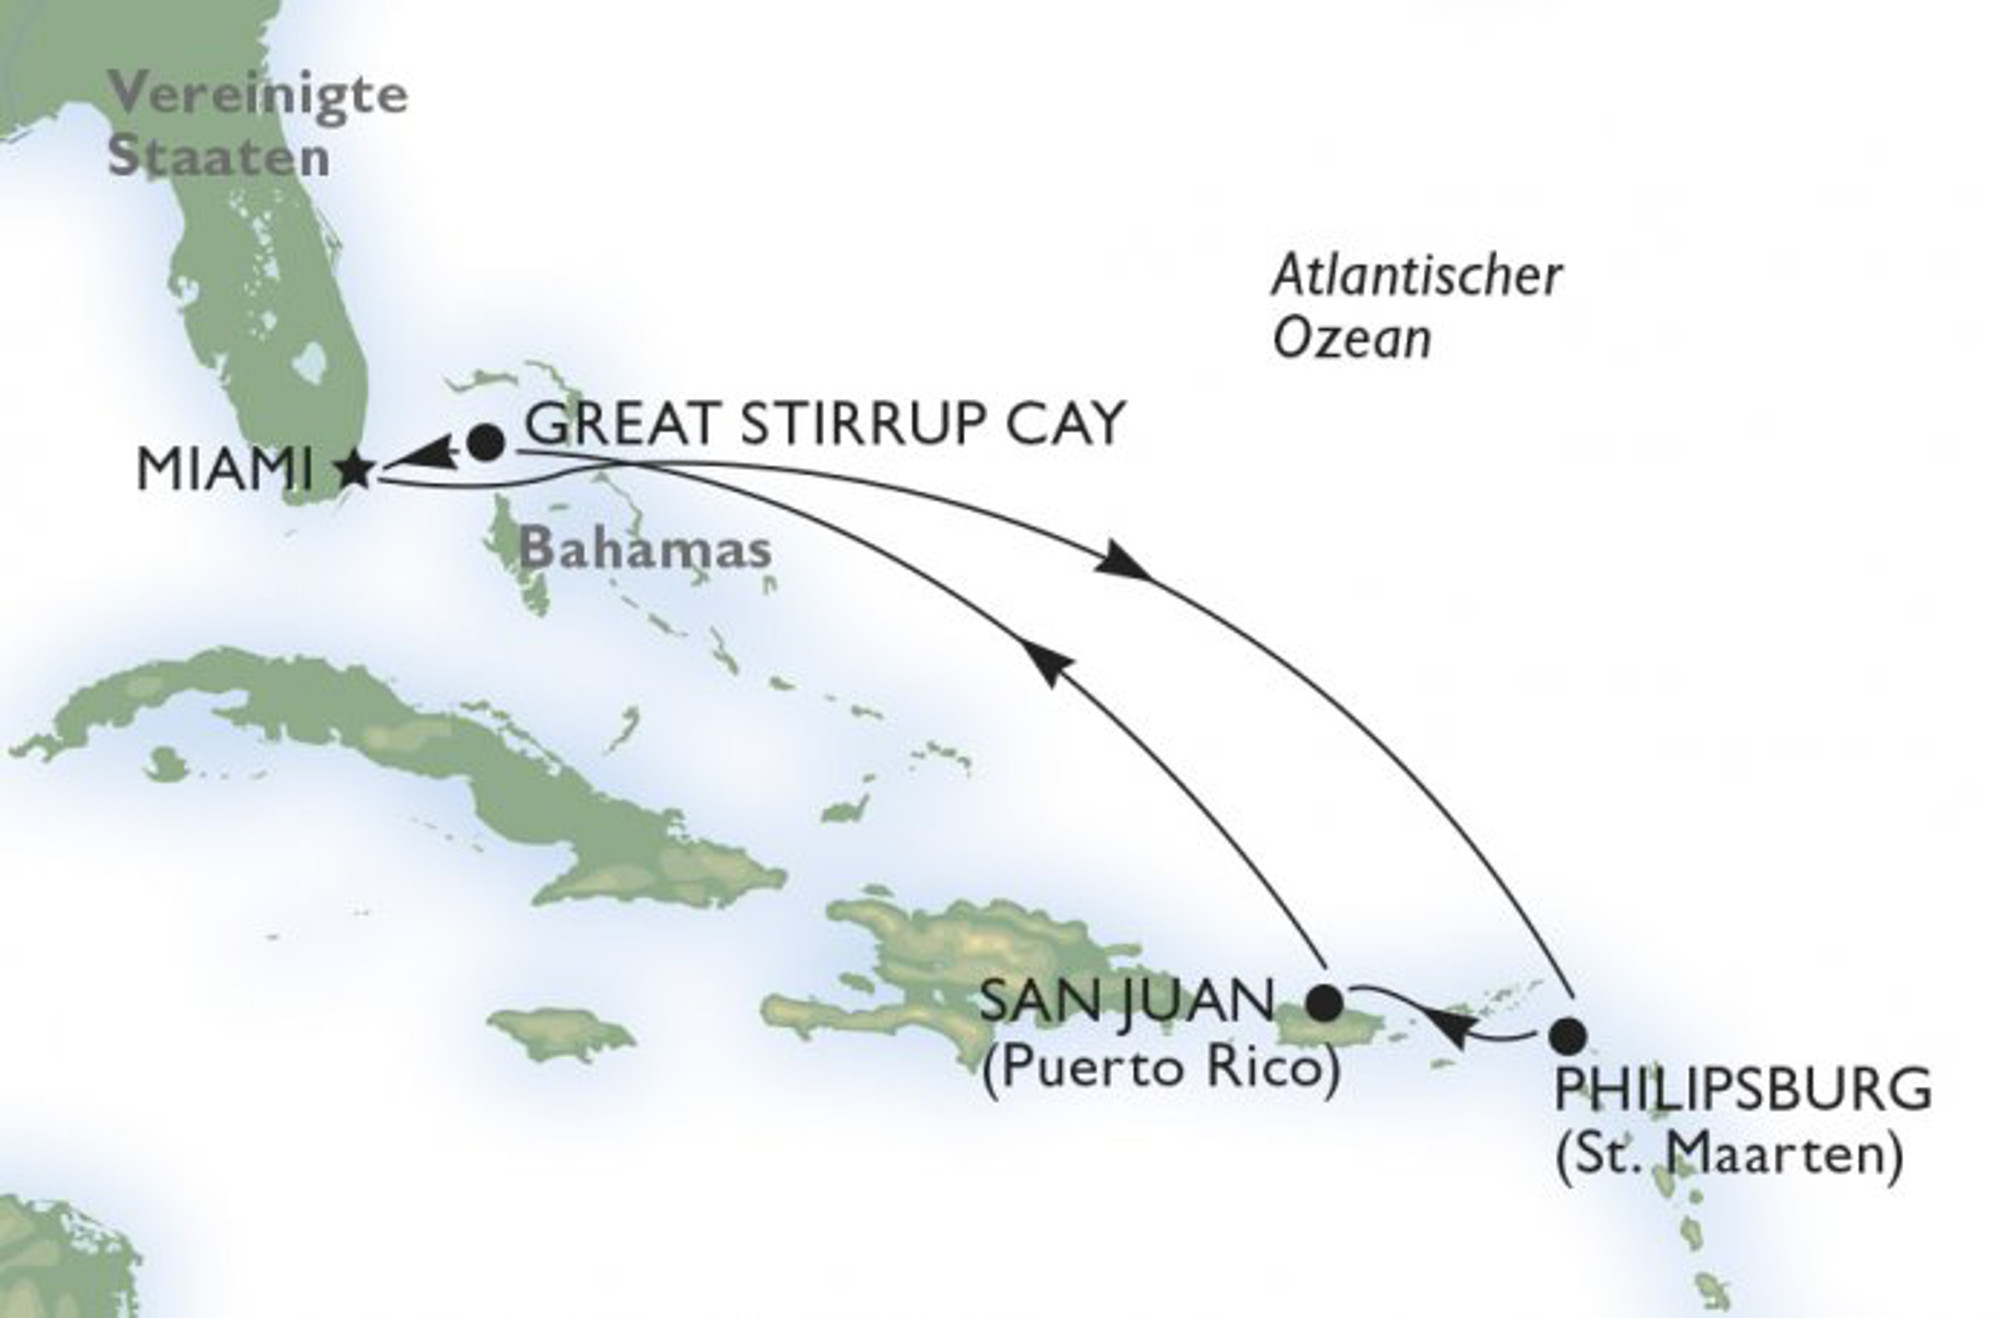 route-msc-divina-miami-philipsburg-san-juan-miami